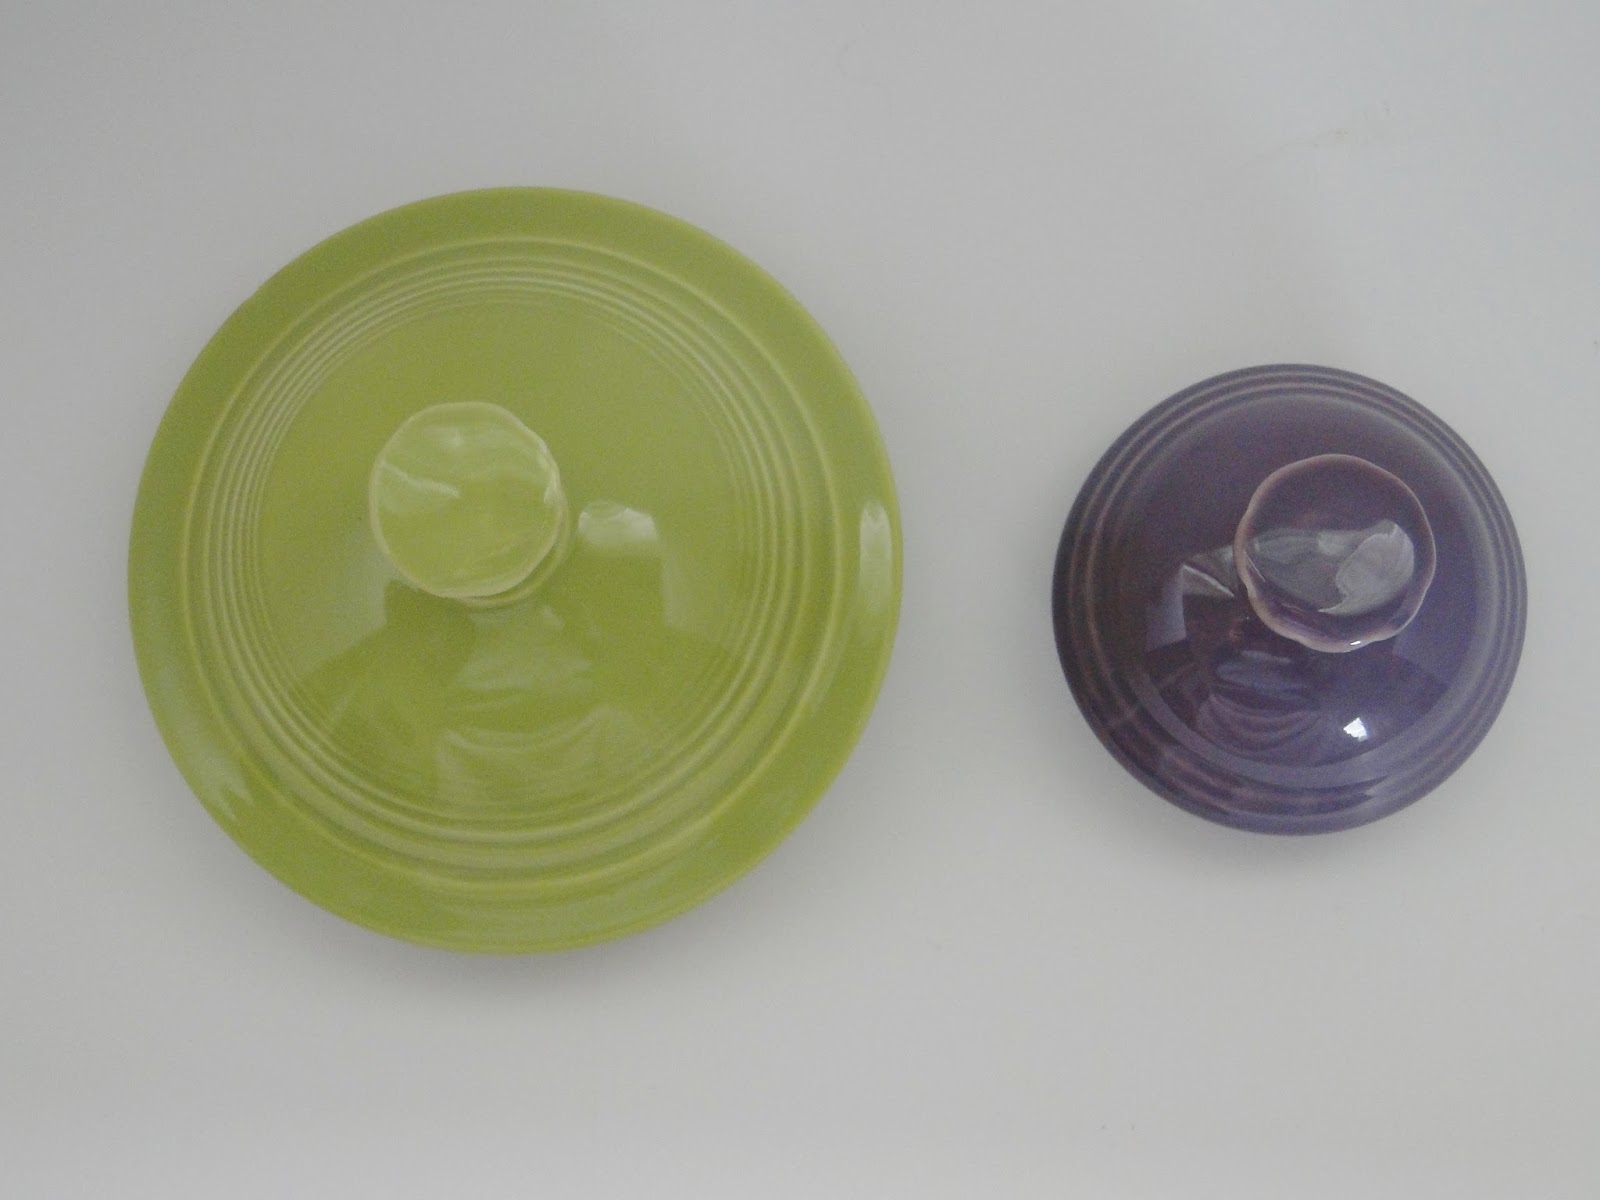 Dishing with hlcca vintage vs p86 fiesta vases teapots vintage chartreuse vs p86 lilac nvjuhfo Choice Image